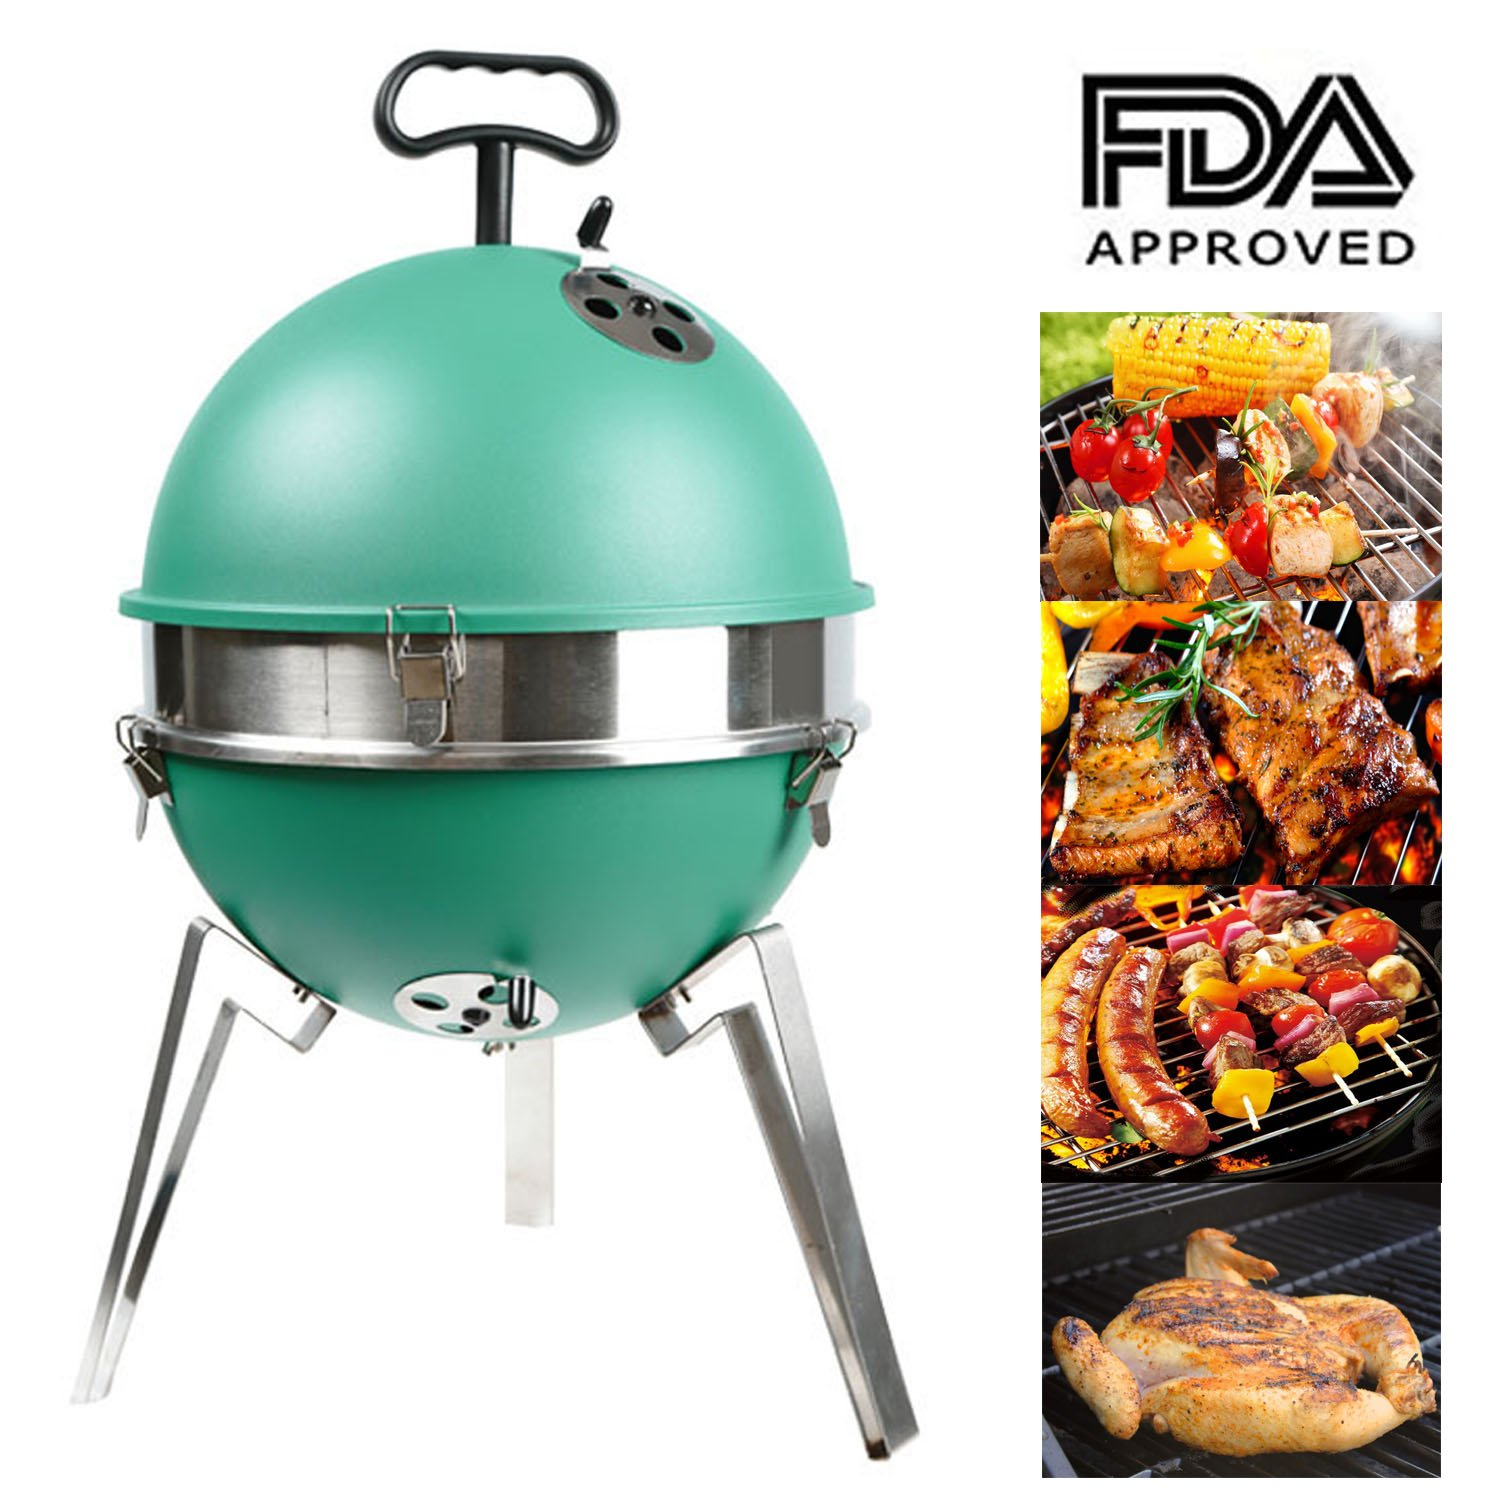 Mangotree Charcoal Grill Portable 12.40in BBQ Removable Barbecue Lightweight Barbecue with Stainless Steel Grate for Patio Garden Lawn Party Beach Camping Backyard Cooking Outdoor Barbecue Tool Green